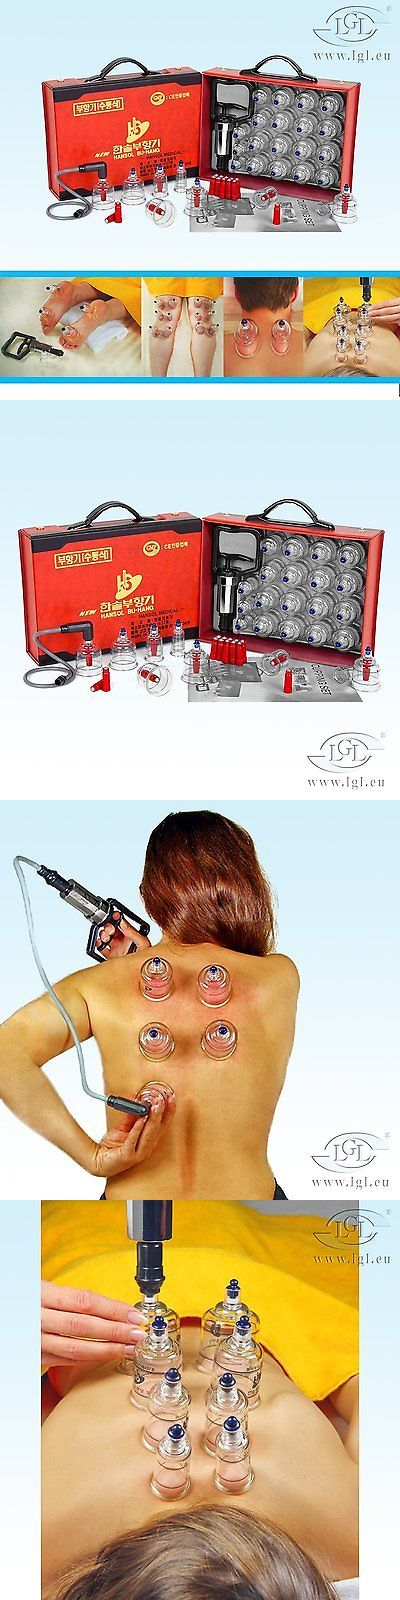 Acupuncture: Hansol Cupping Set 19 Cups Chinese Massage Therapy Body Vacuum Suction Machine -> BUY IT NOW ONLY: $38.83 on eBay!